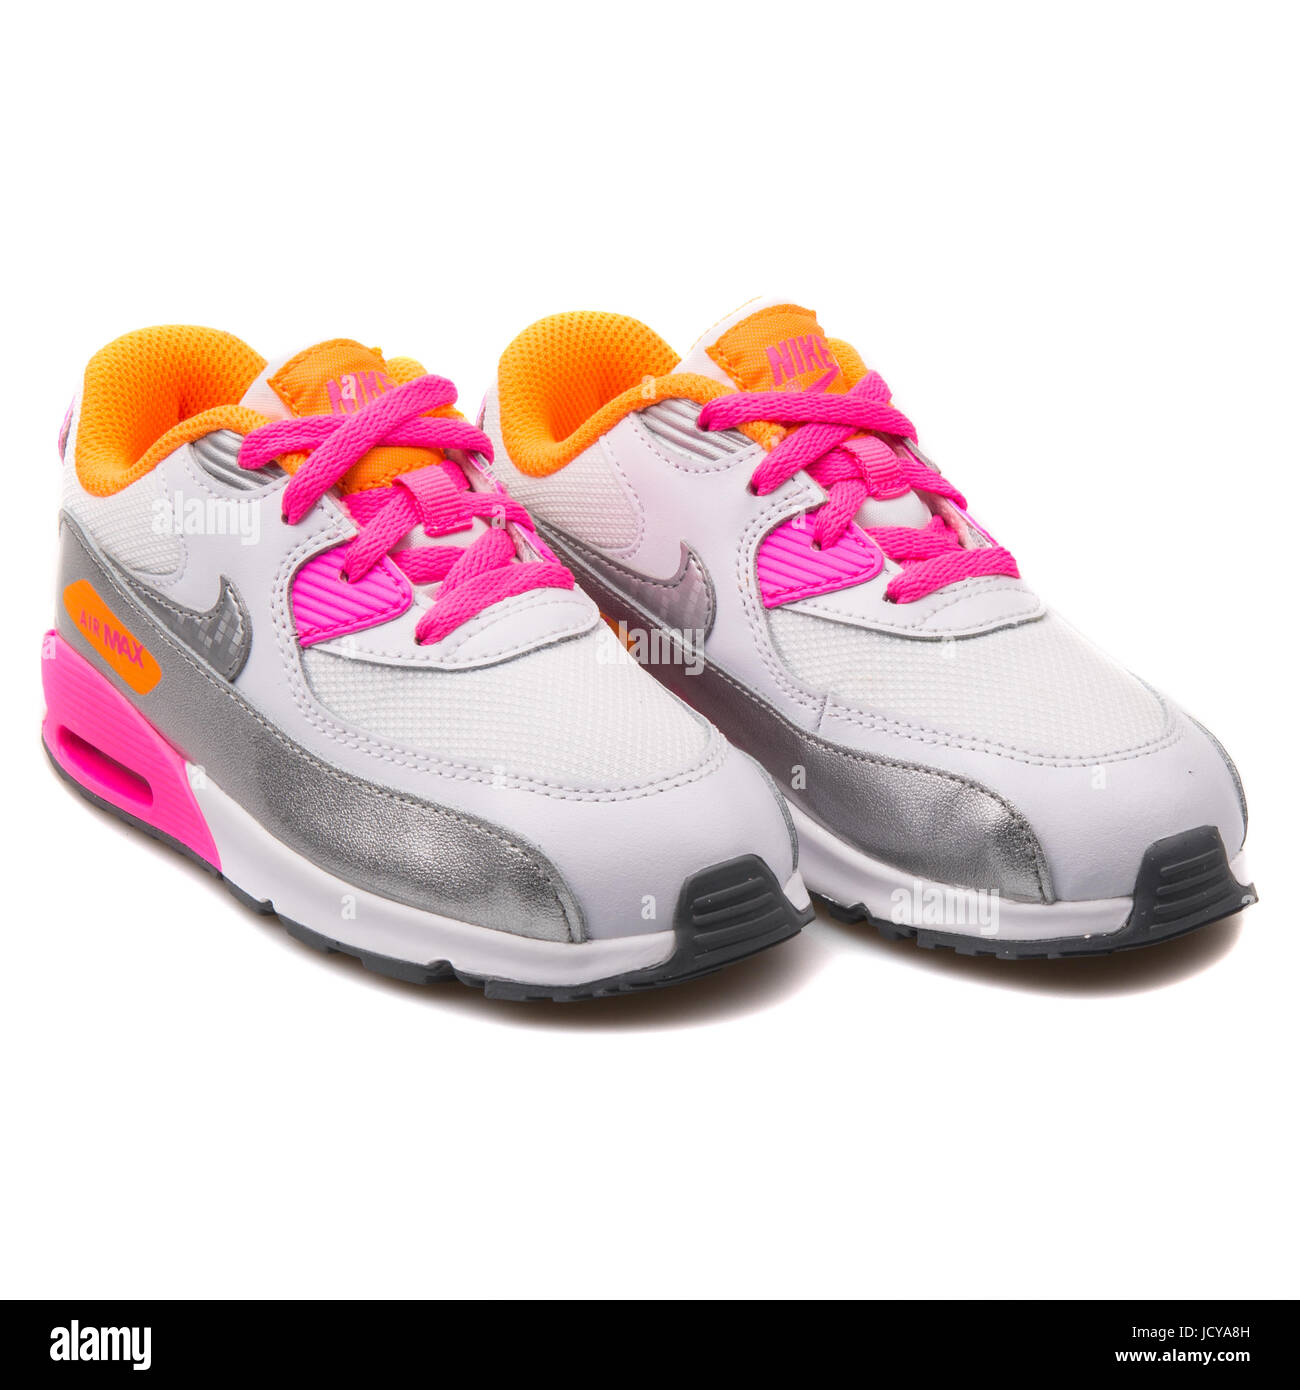 79cd293fcc Nike Air Max 90 Mesh (TD) White, Silver Orange and Pink Toddler's Running